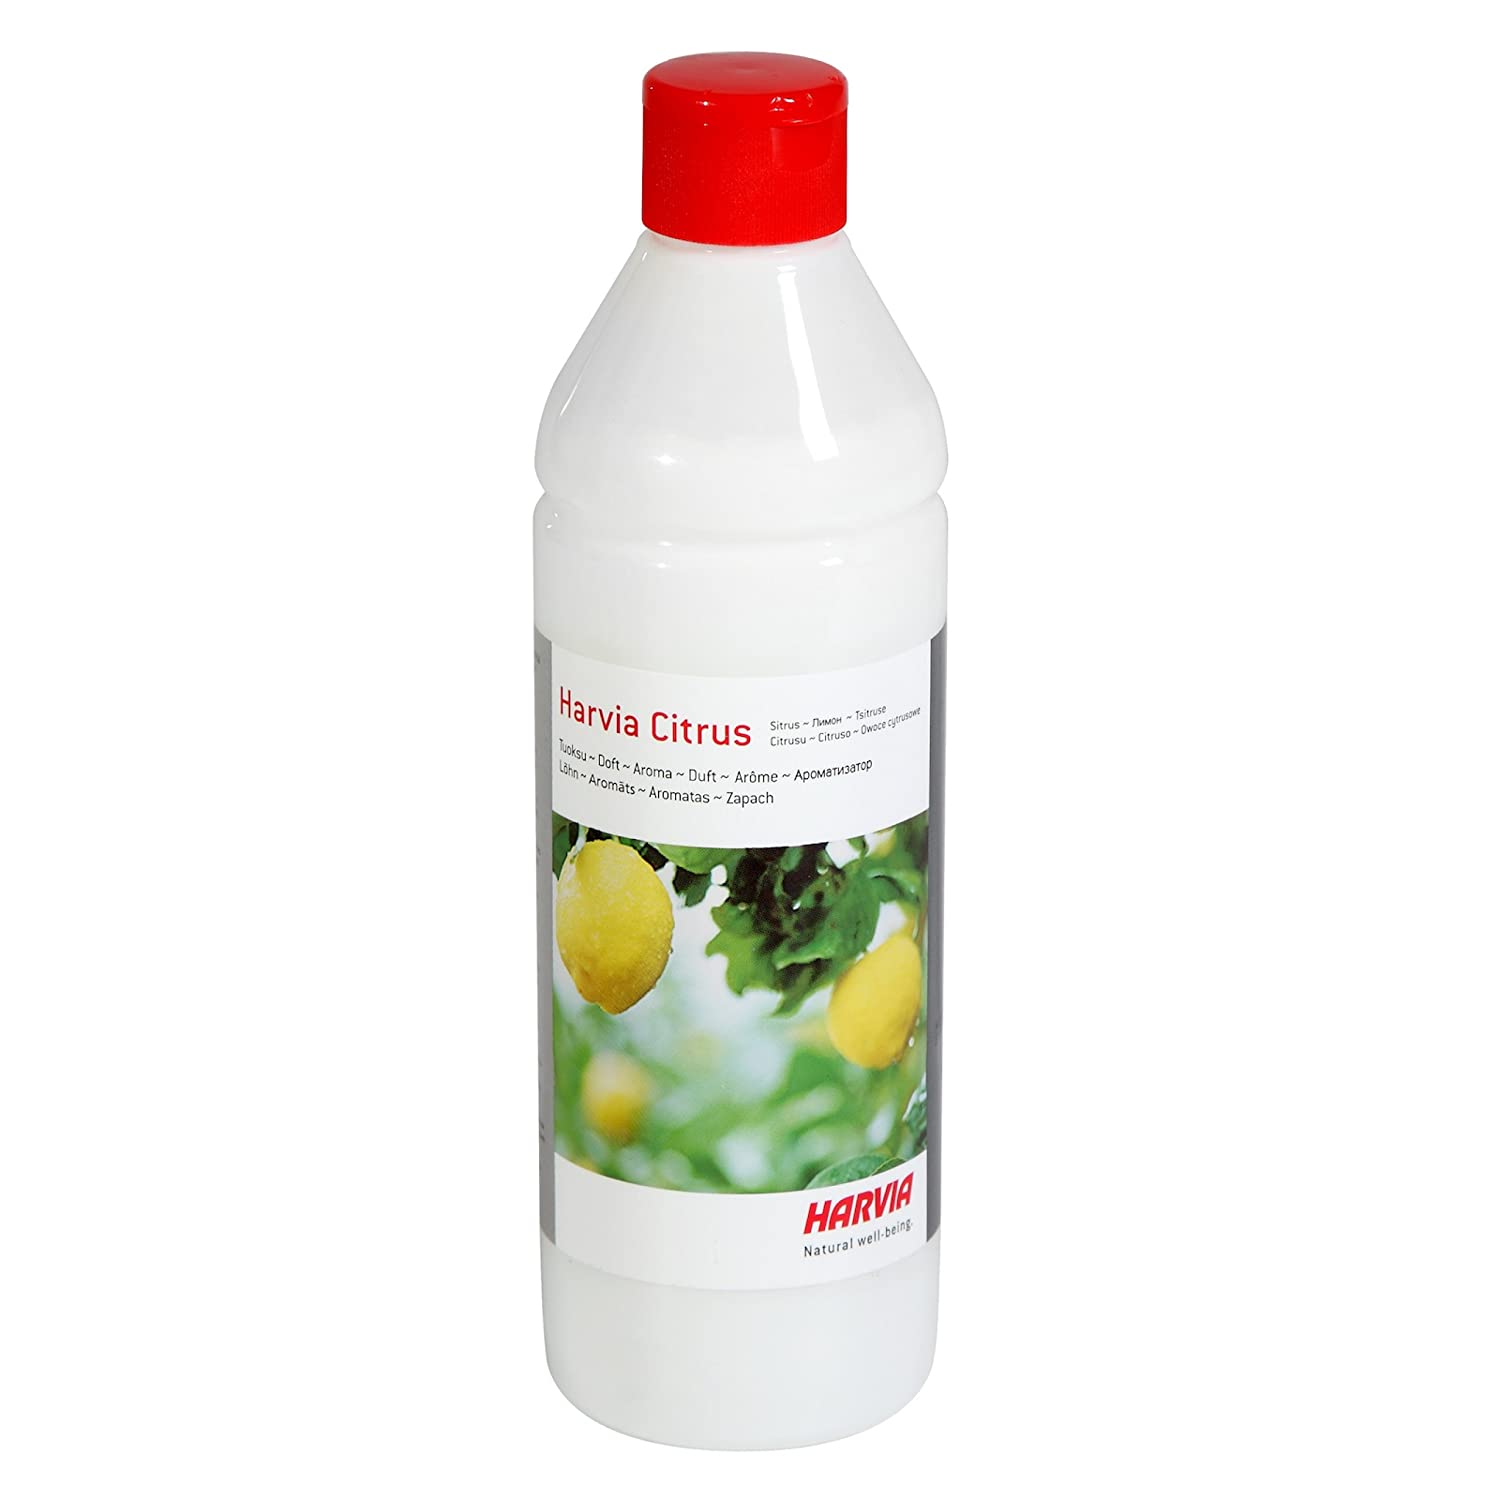 HARVIA SAUNA AROMAS 500ml citrus